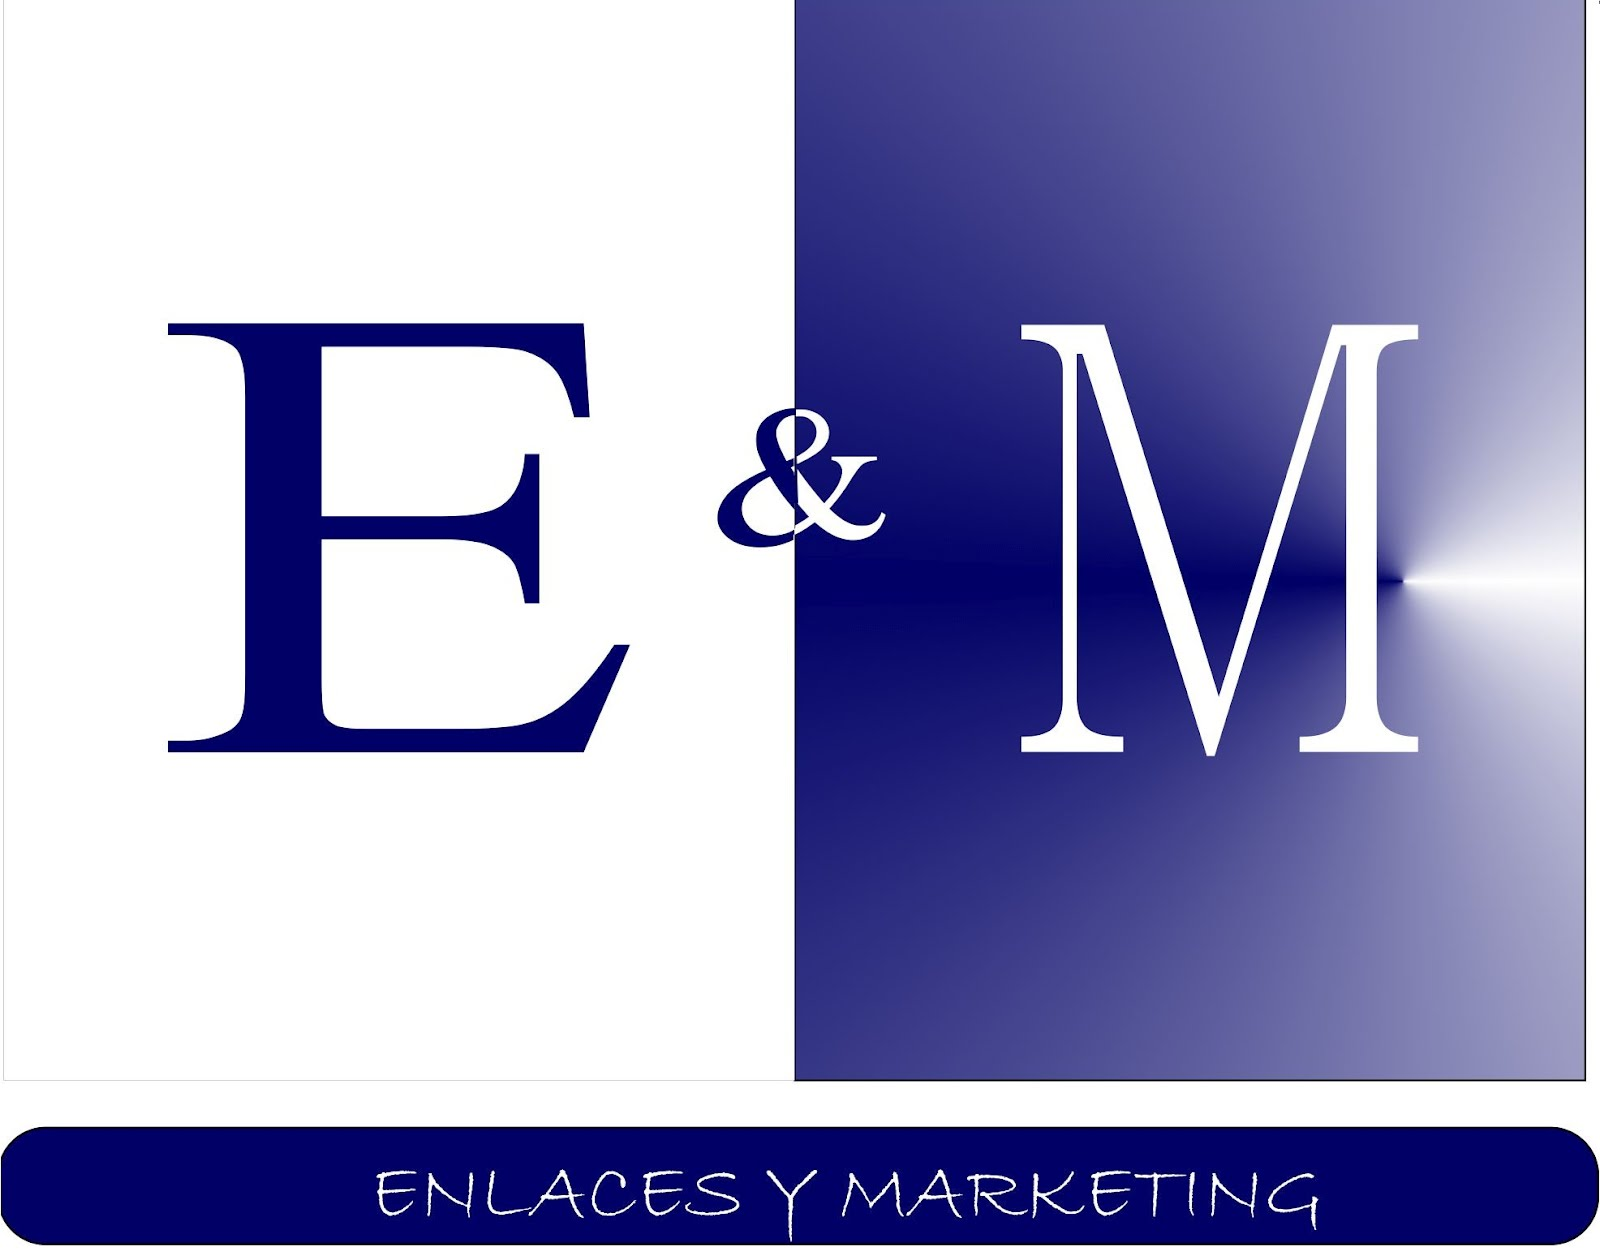 Enlaces & Marketing